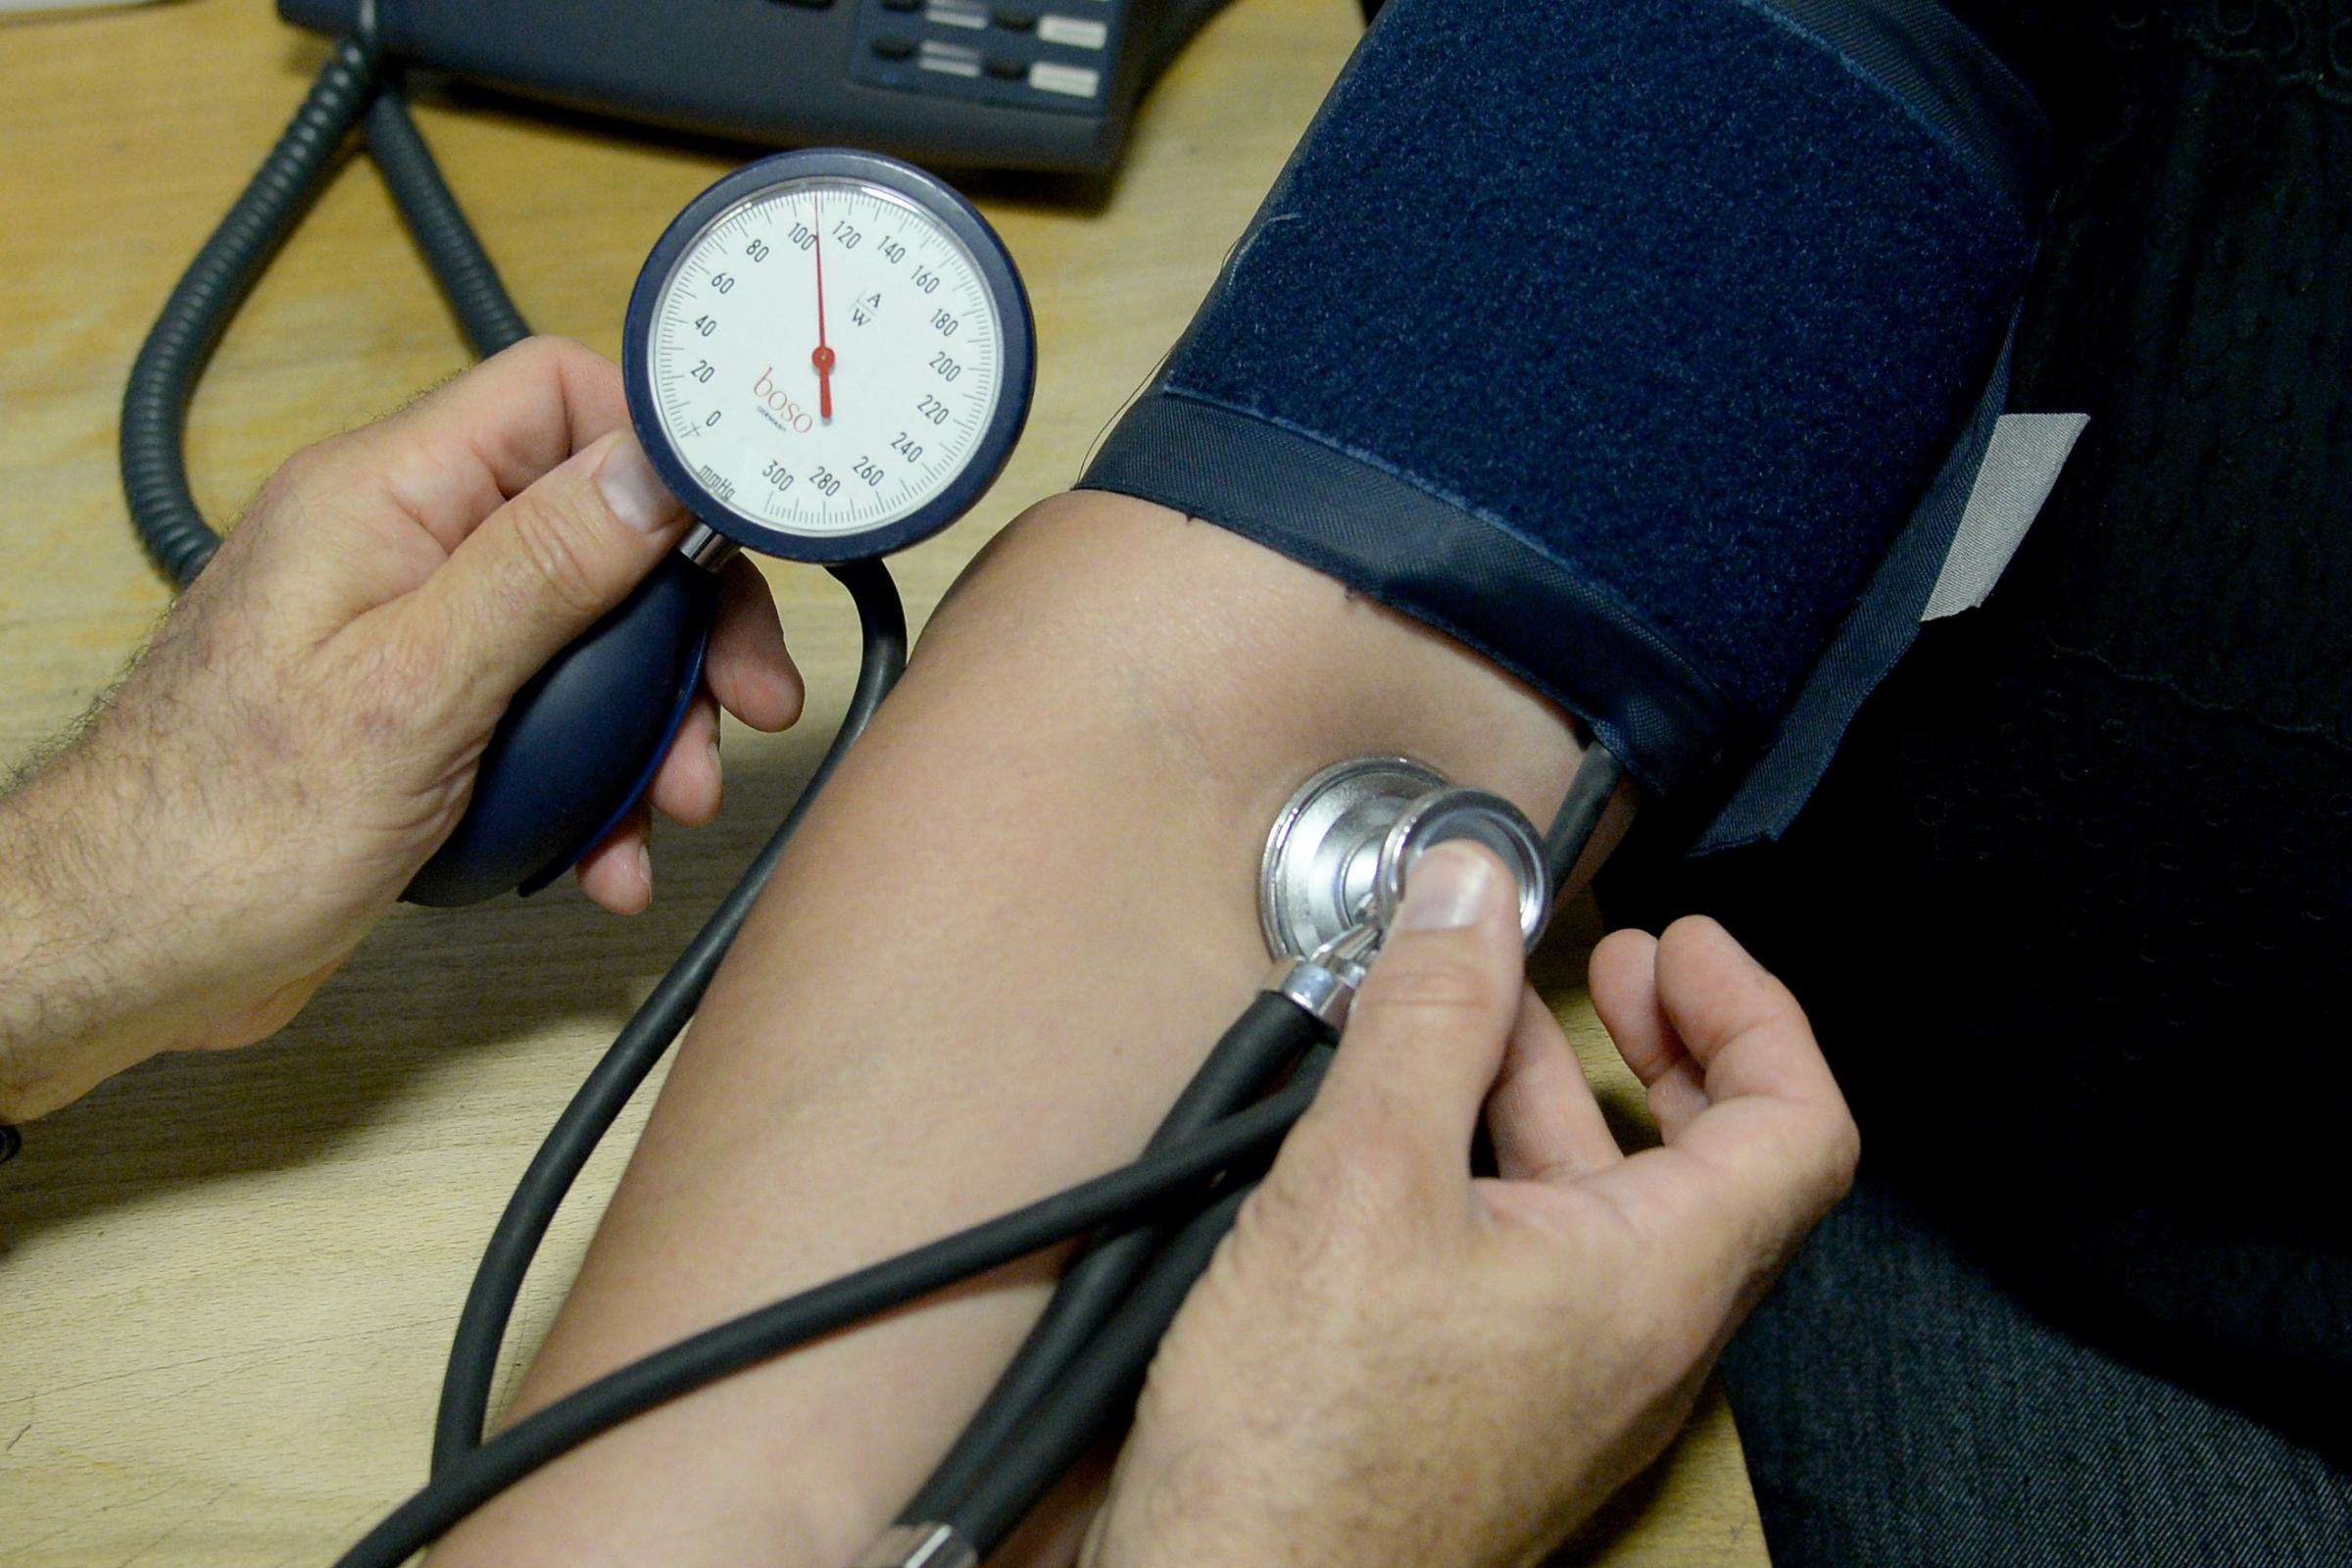 High blood pressure can double risk of Covid-19 death